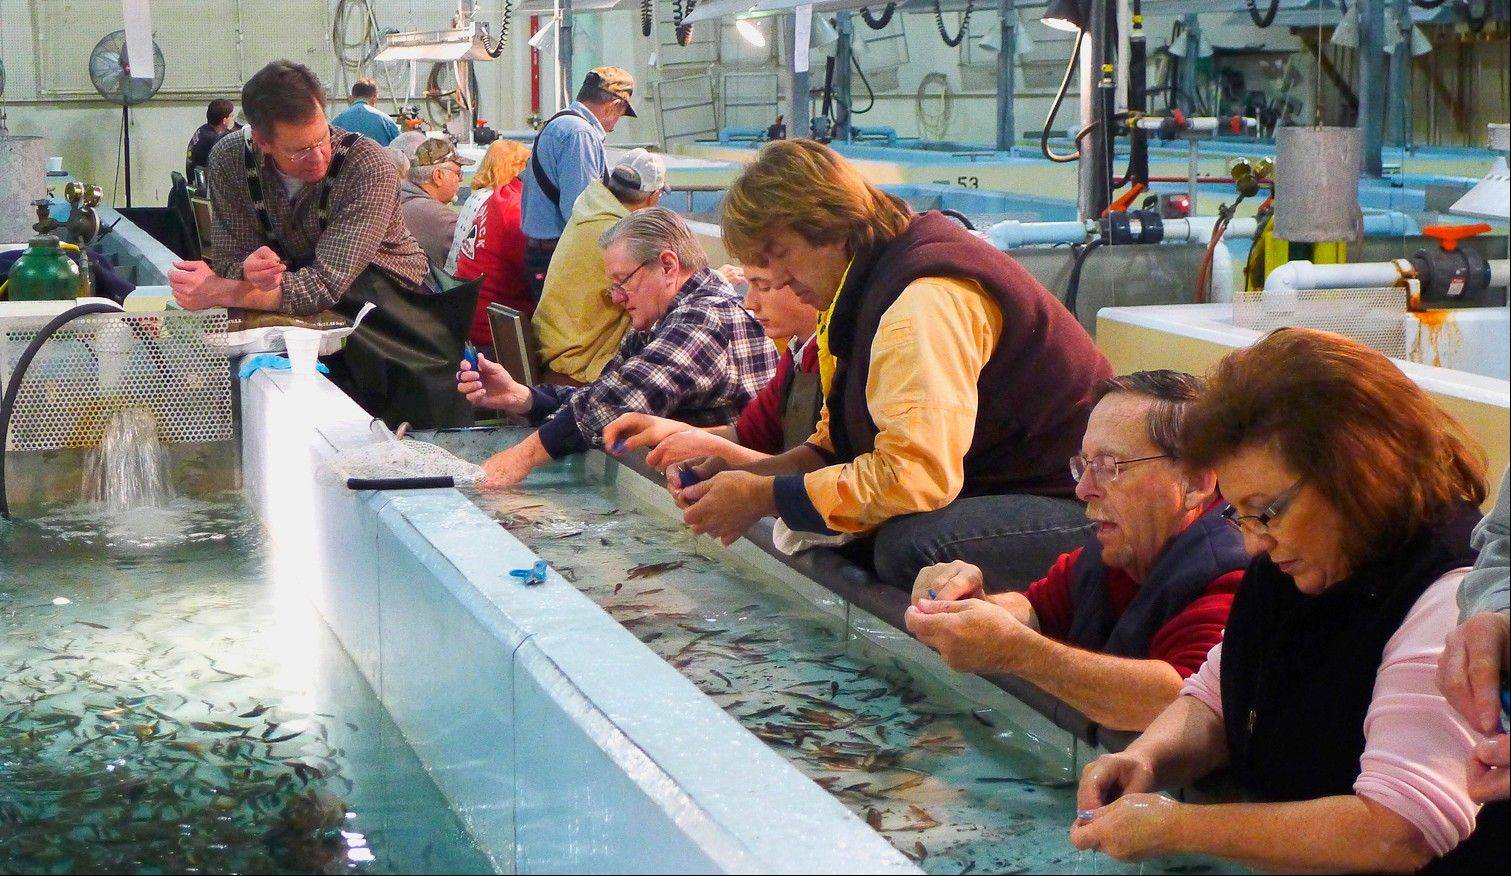 Volunteers from Salmon Unlimited spend a day marking rainbow trout at the Jake Wolf Memorial Fish Hatchery in Topeka, Ill.